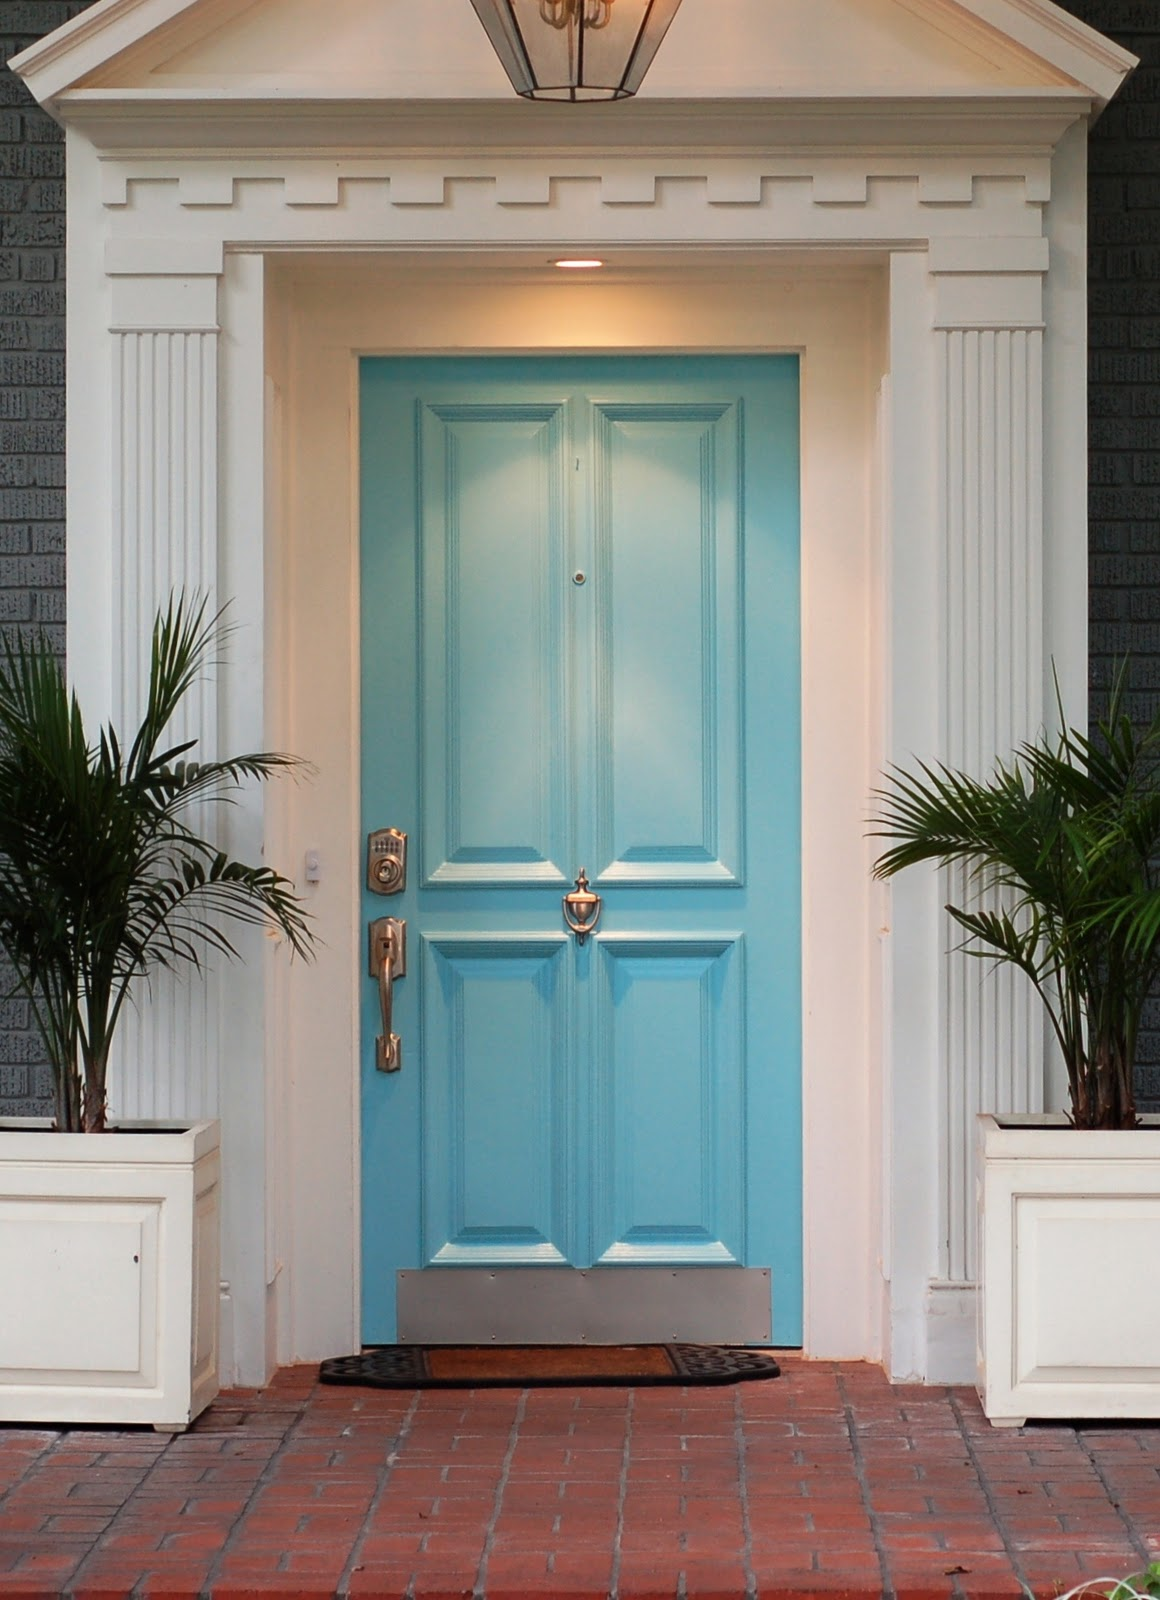 1600 #447A87 Front Door Colors To Help Sell Your Home picture/photo Front Doors Pictures 40791160